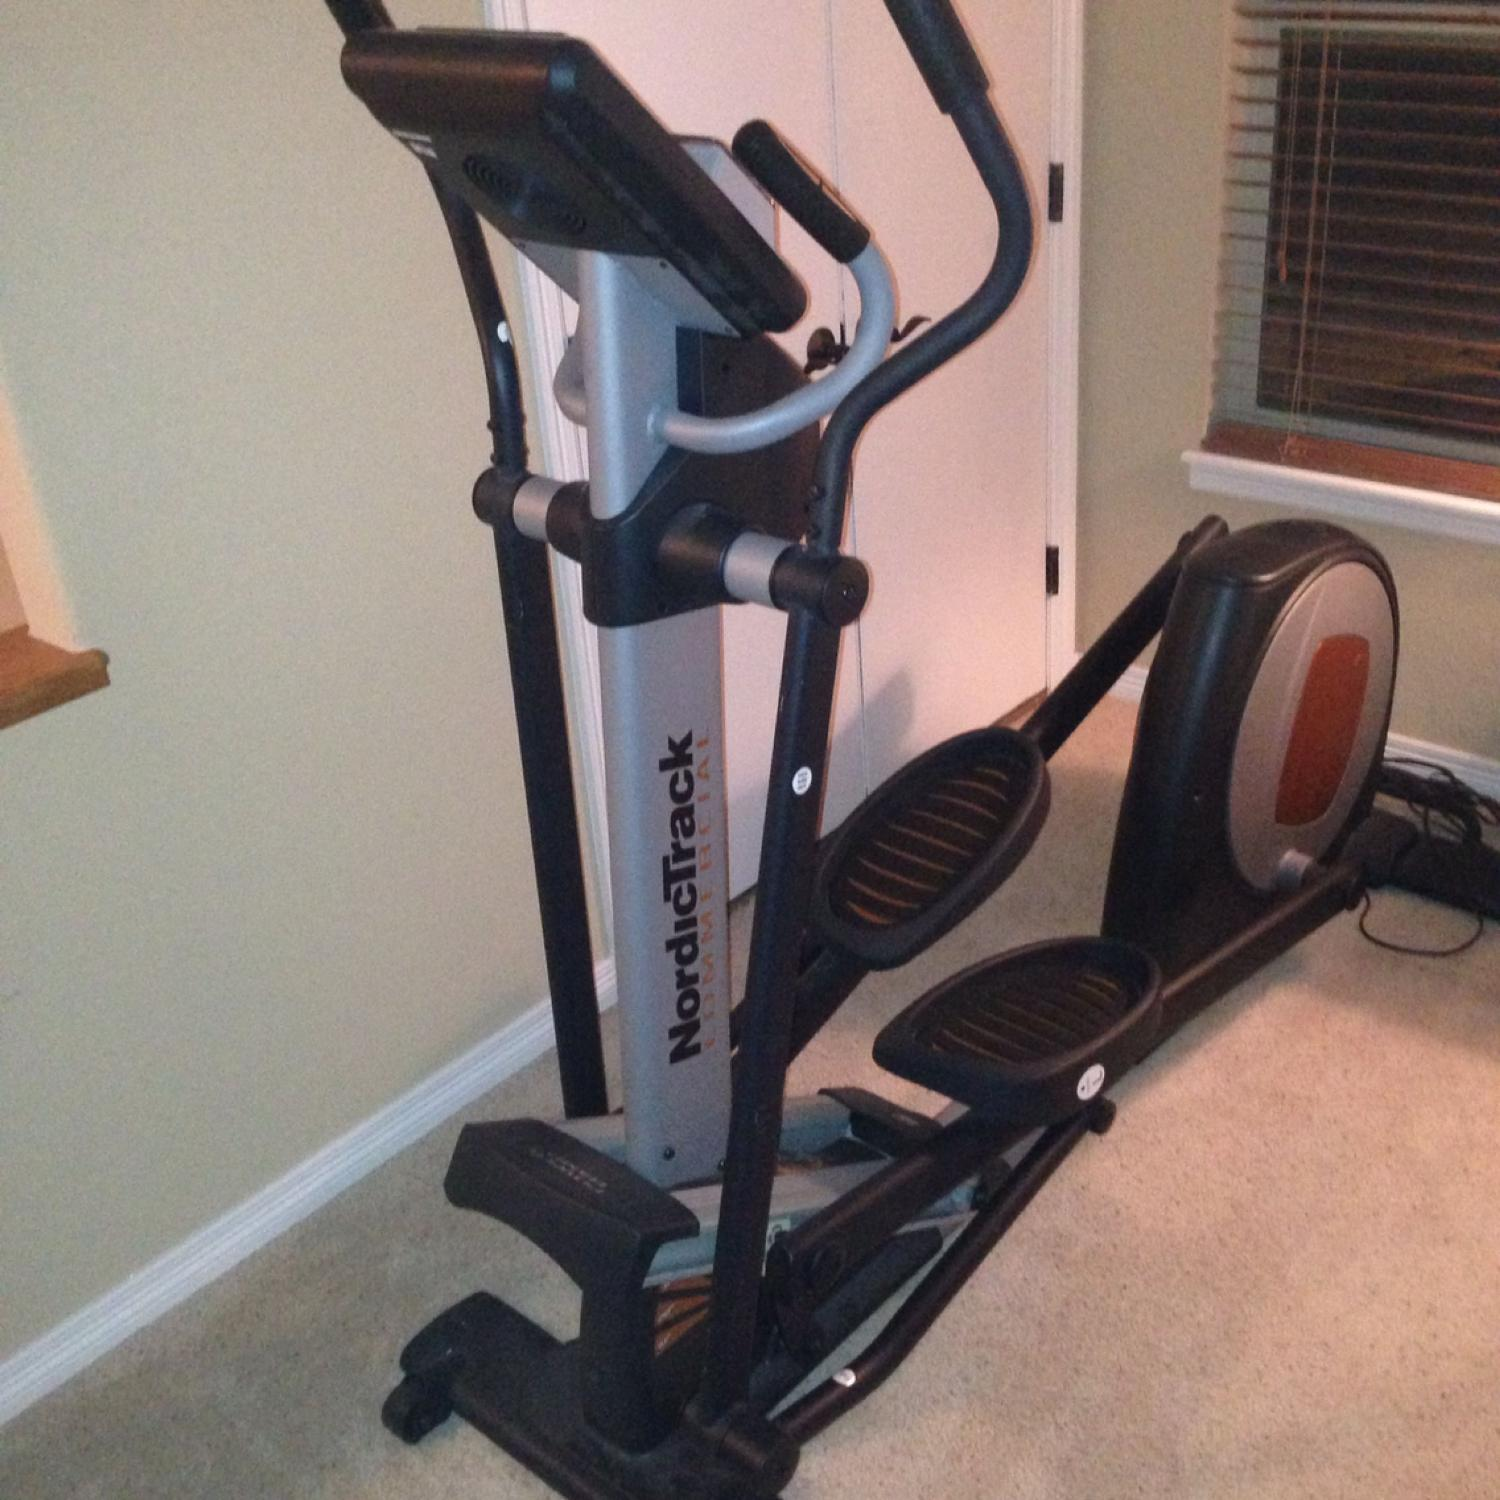 Find More Nordic Track Commercial Xm Elliptical For Sale